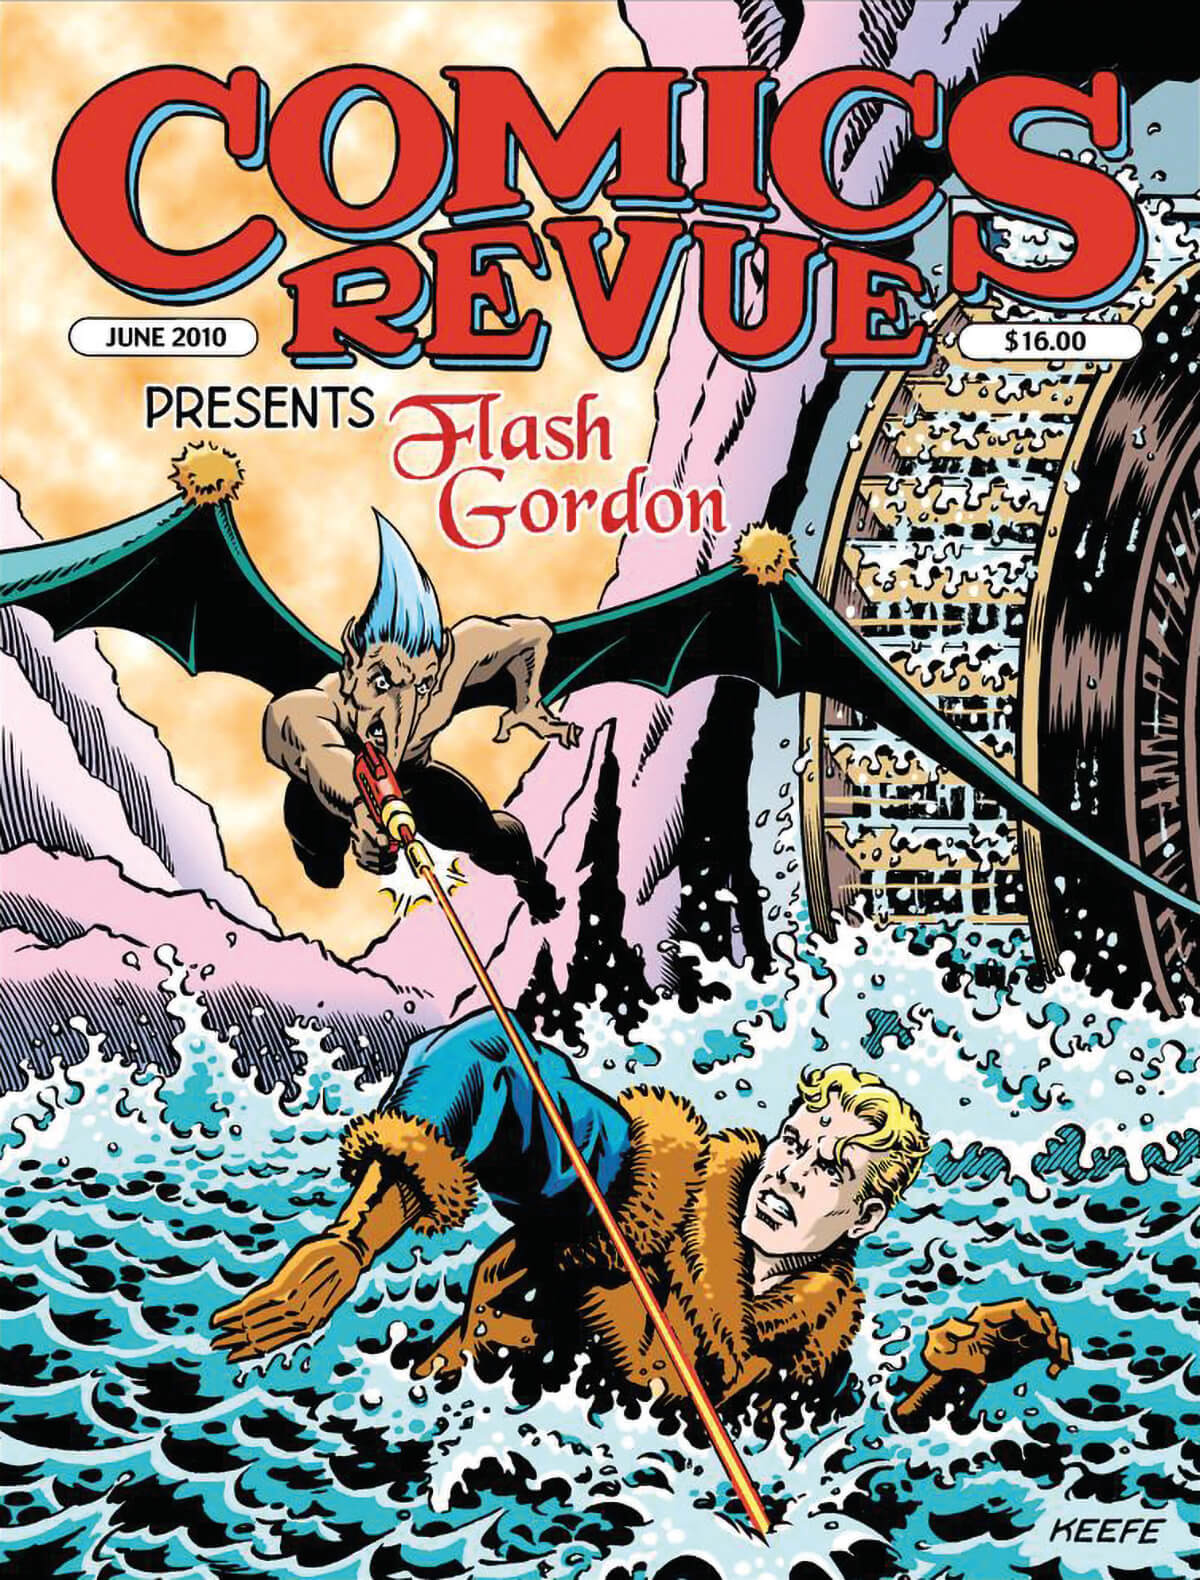 Comics Revue June 2010 Cover Flash Gordon by Jim Keefe